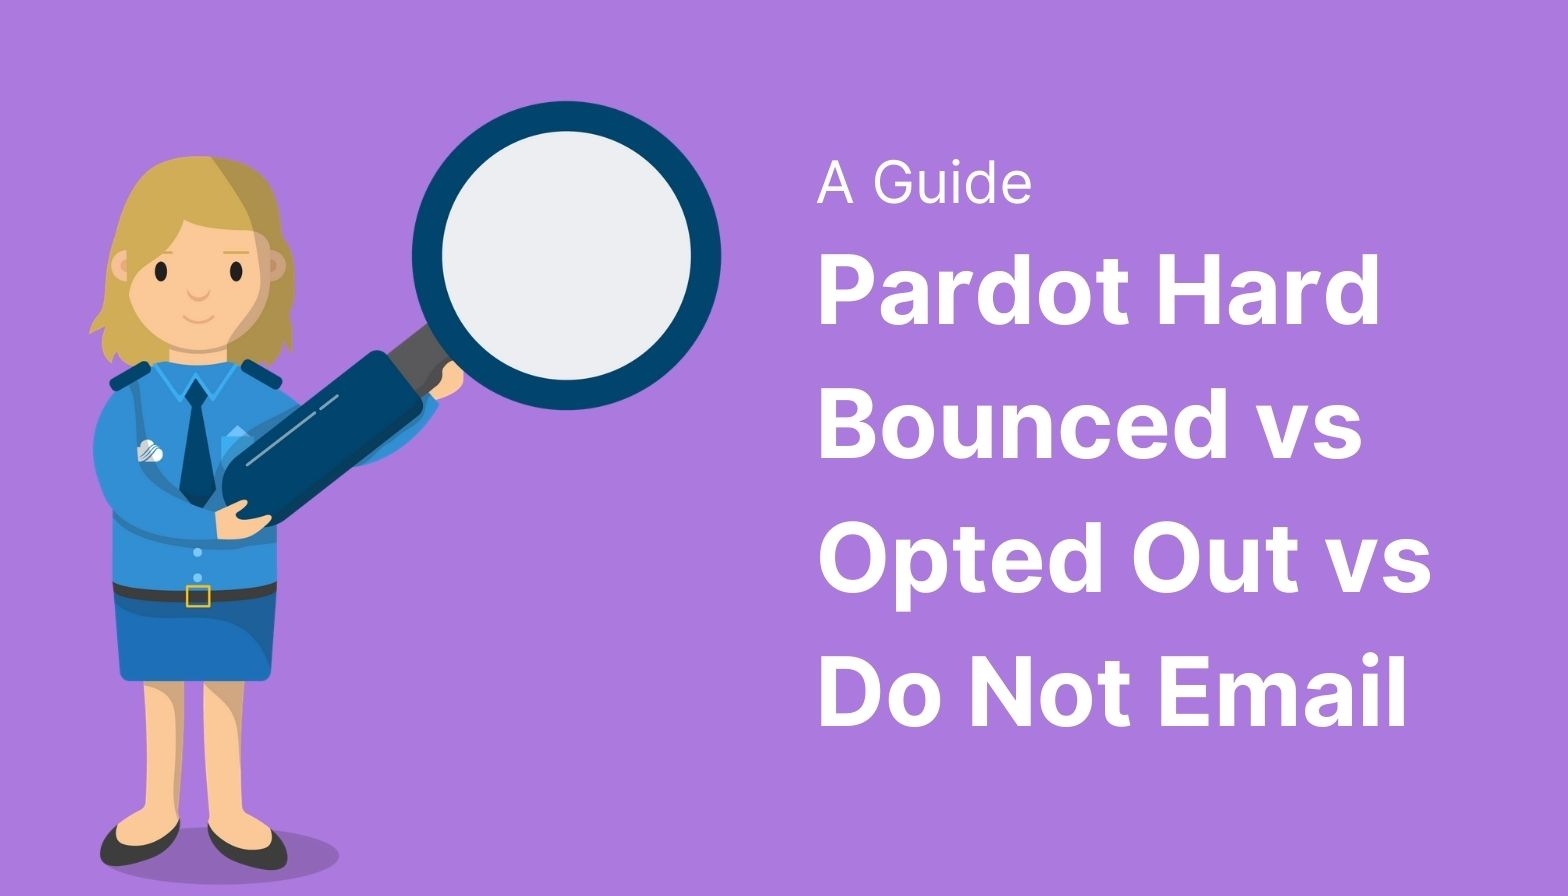 Pardot Hard Bounced vs Opted Out vs Do Not Email: A Guide